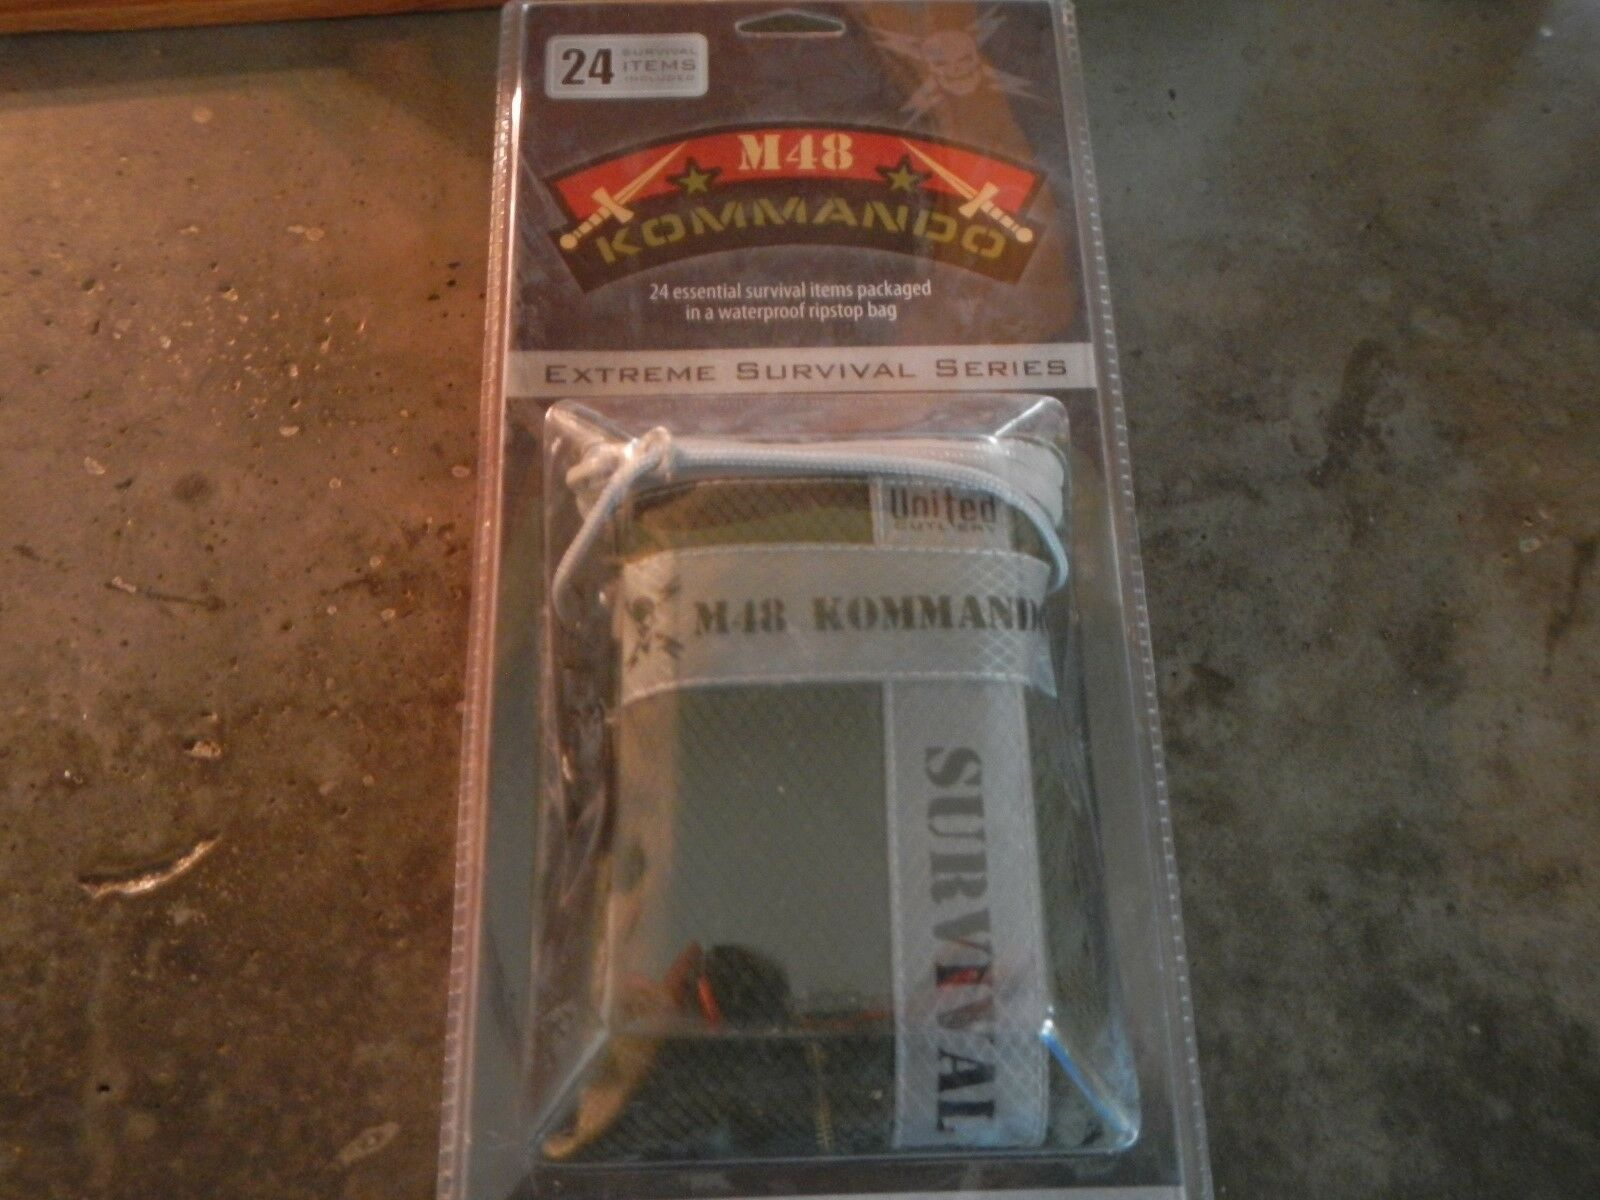 M48 Kommando Ultimate Survival  Kit  shop makes buying and selling